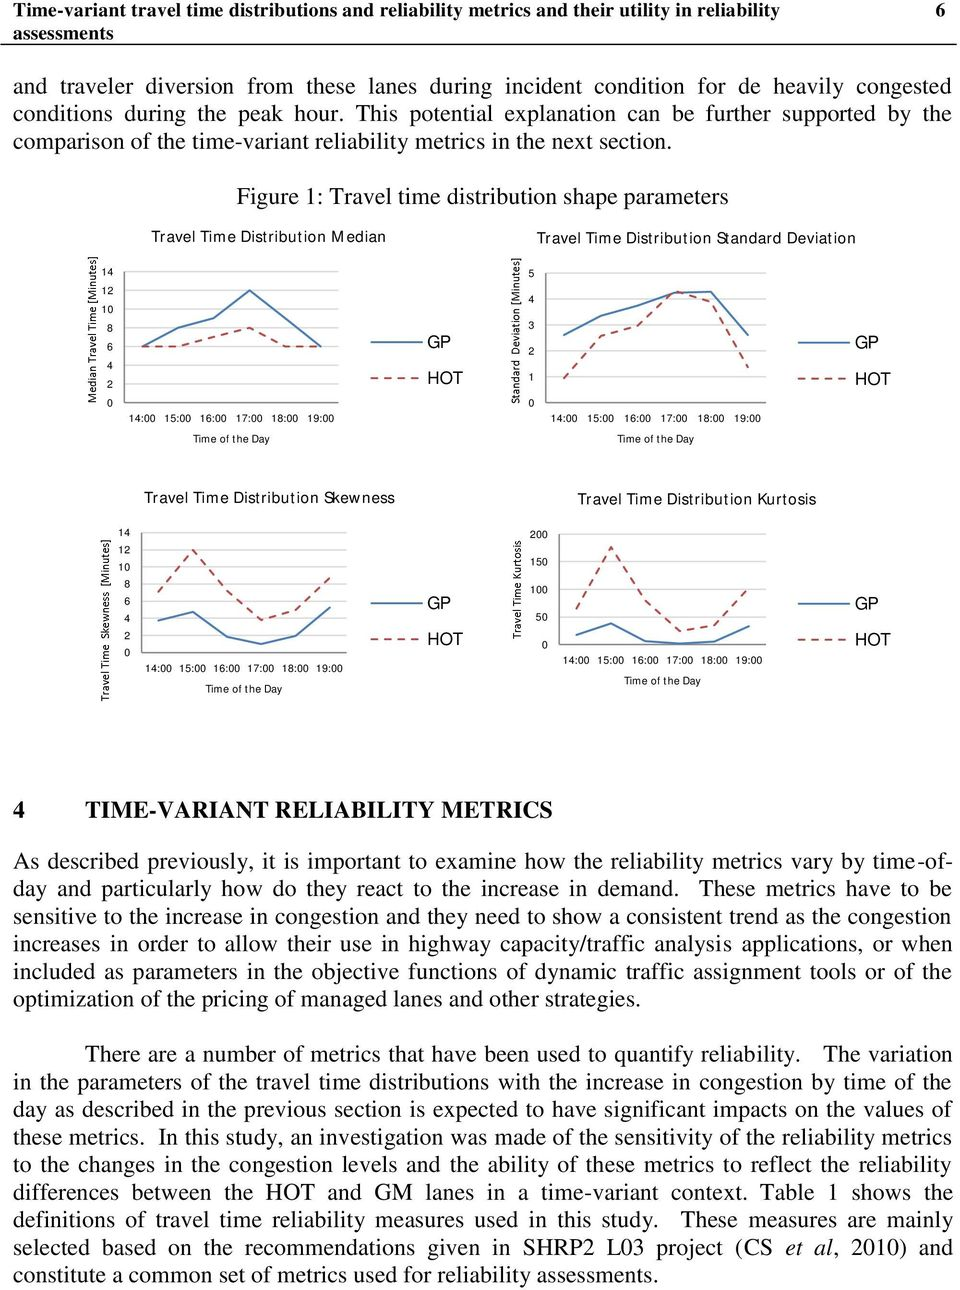 Figure 1: Travel time distribution shape parameters Travel Time Distribution Median Travel Time Distribution Standard Deviation 14 12 10 8 6 4 2 0 14:00 15:00 16:00 17:00 18:00 19:00 GP HOT 5 4 3 2 1